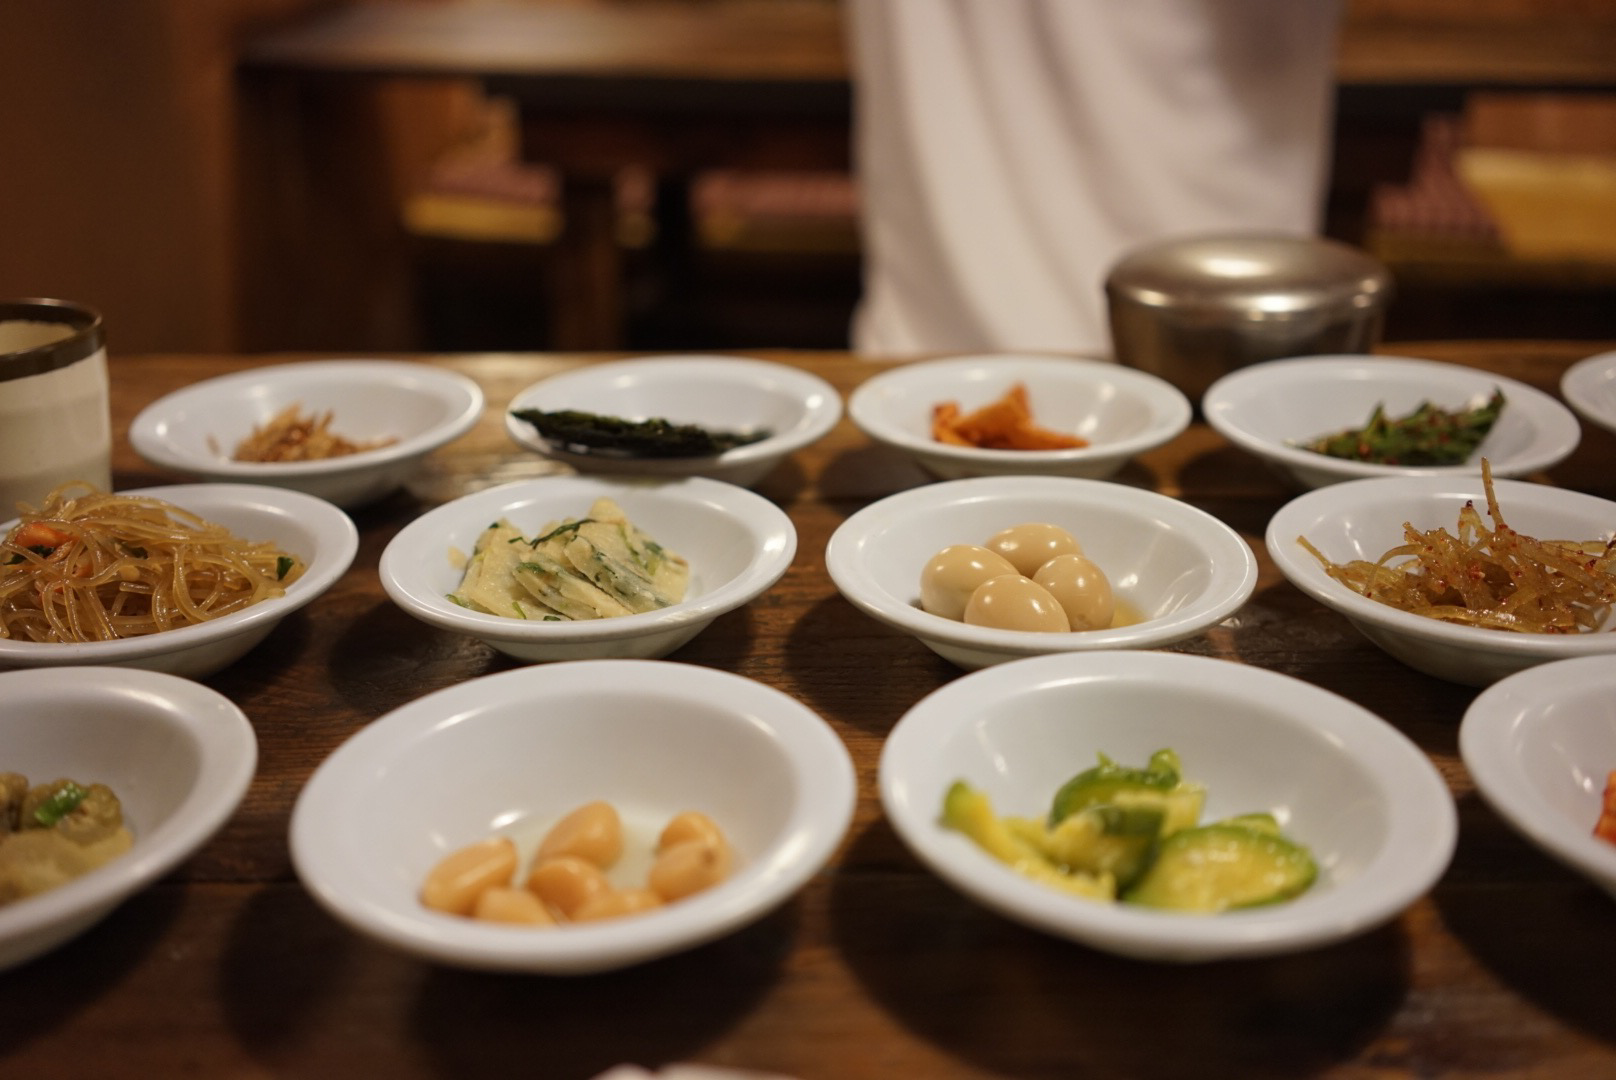 Sigol Bapsang, a place that specialized in serving a huge variety of banchan, korean side dishes